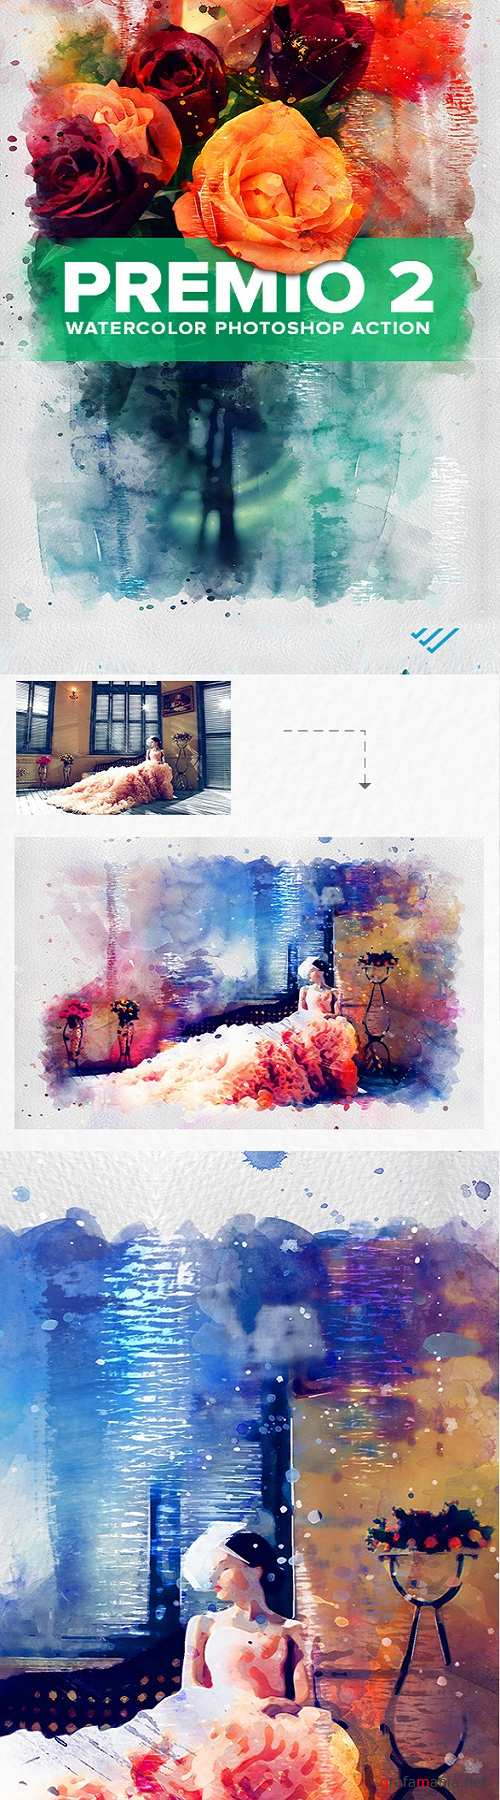 Premio 2 Watercolor Photoshop Action - 22256947